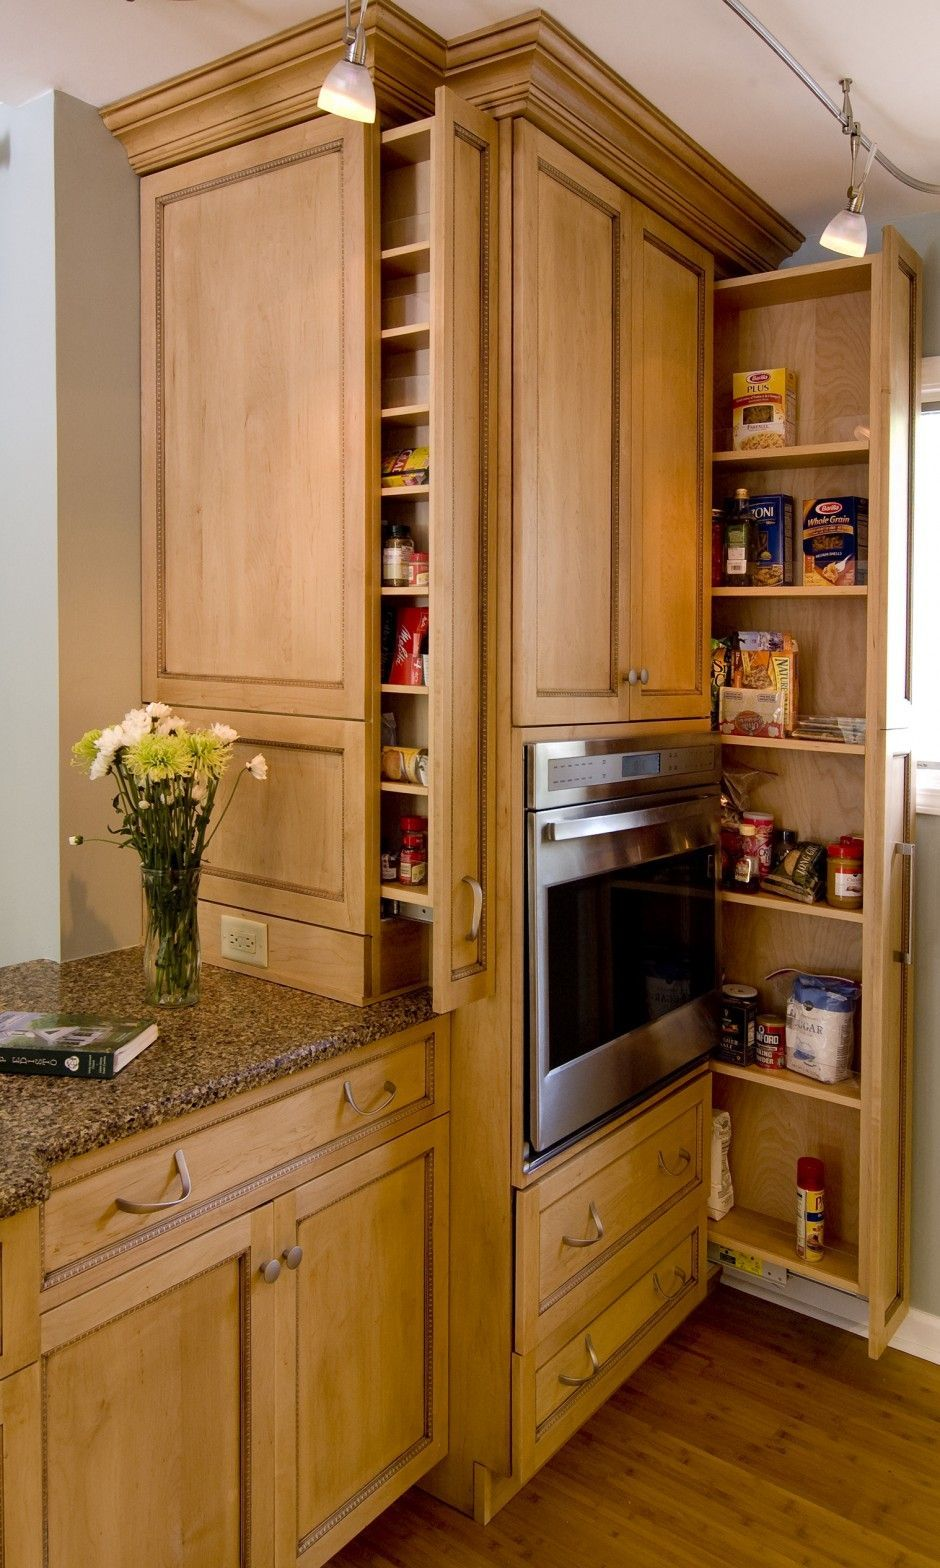 Explore Shelving Ideas For Kitchen On Pinterest See More Ideas About Shelving Ideas For Kitchen Kitchen Spice Storage Kitchen Design Kitchen Renovation